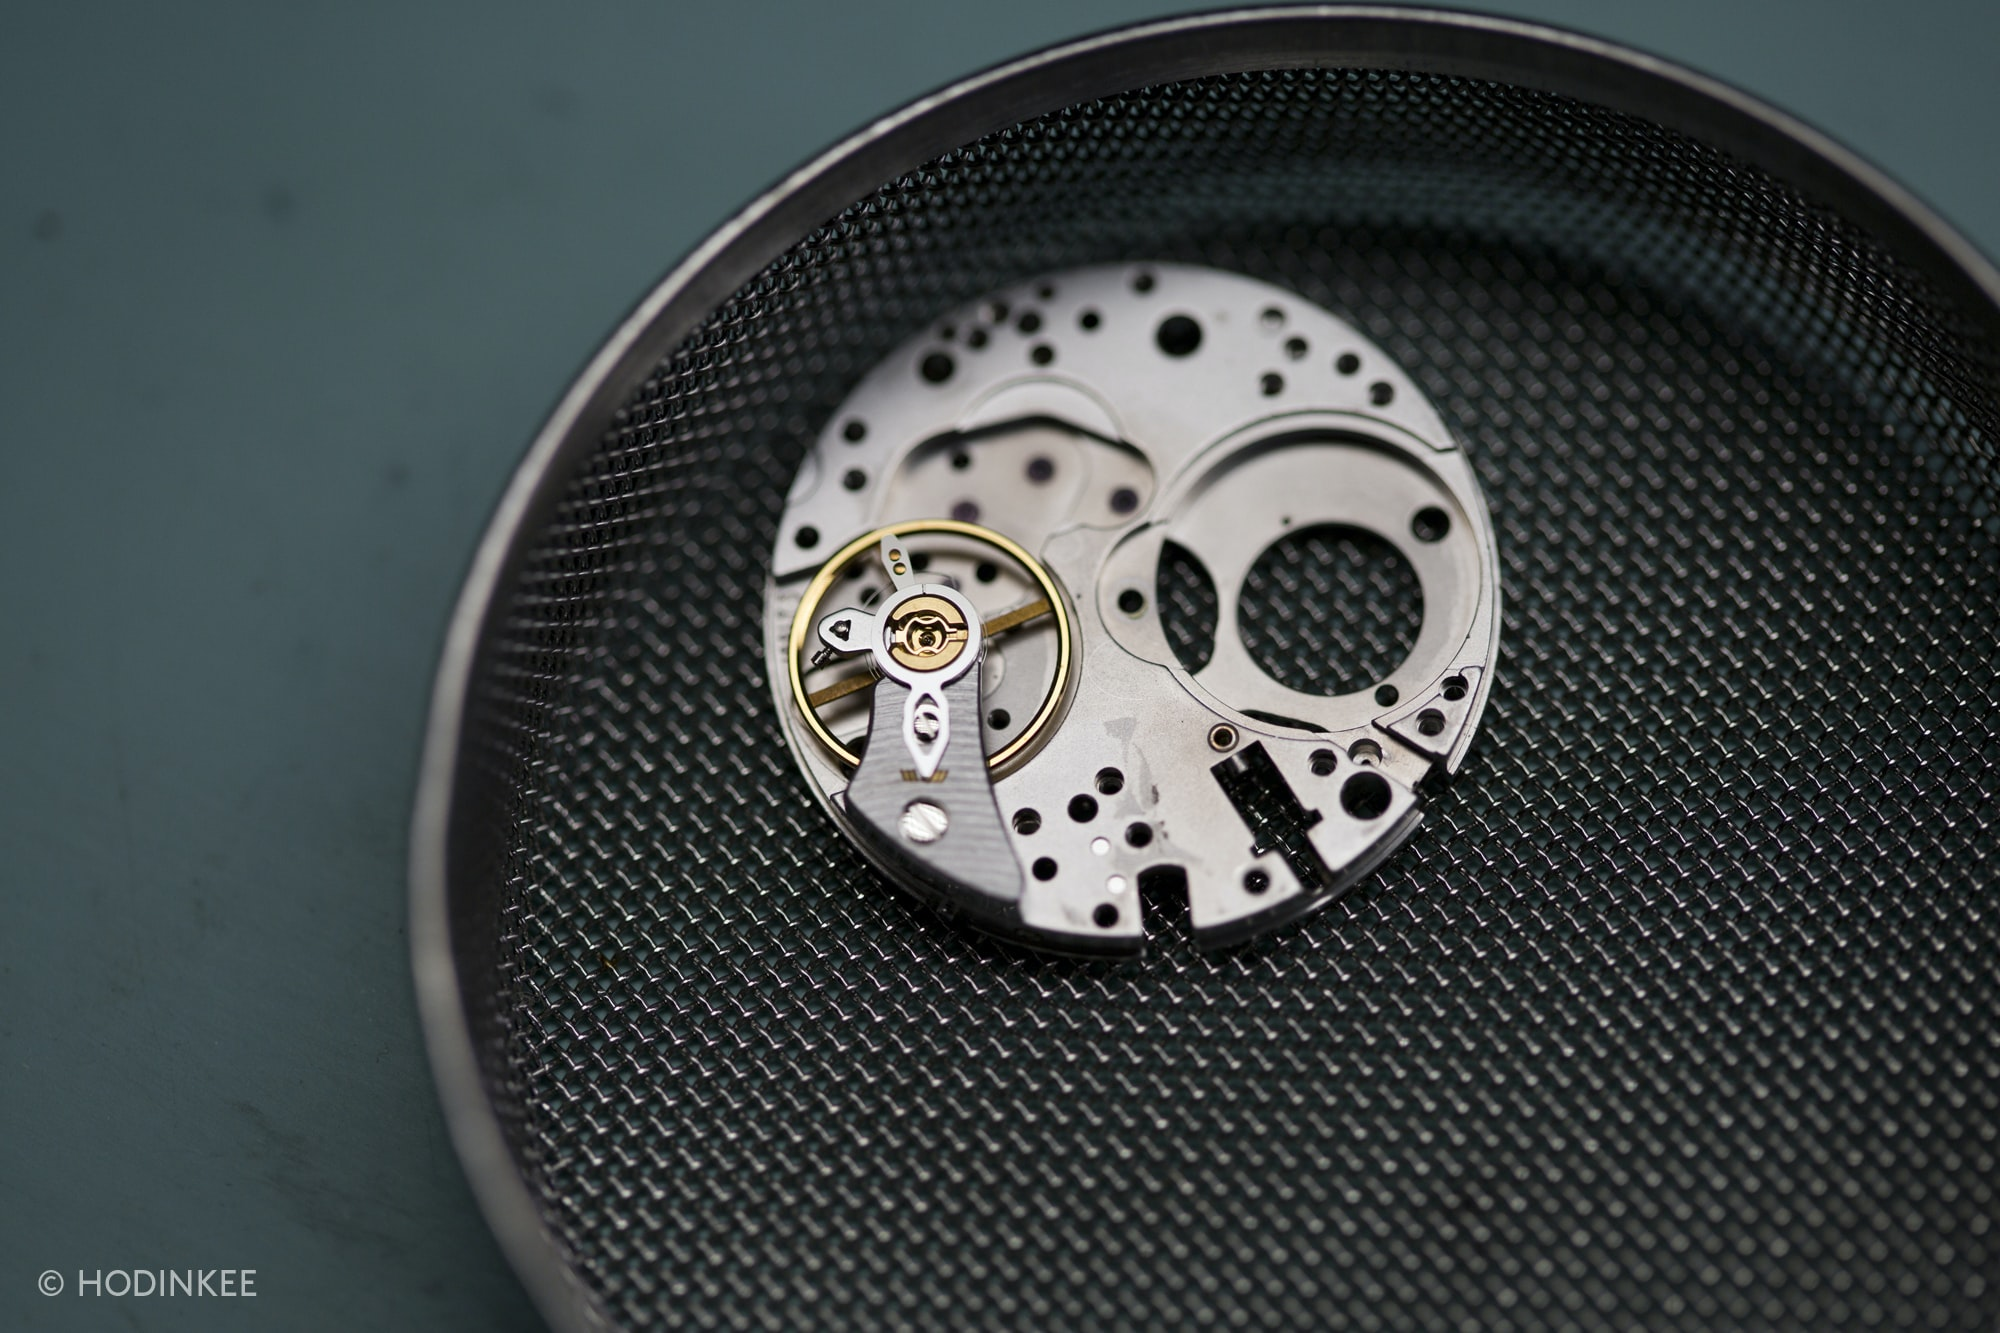 Manfredi Jewels VIDEO: How To Service The 234-Component Caliber 1861 Inside The Omega Speedmaster VIDEO: How To Service The 234-Component Caliber 1861 Inside The Omega Speedmaster omega speedmaster caliber 1861 08